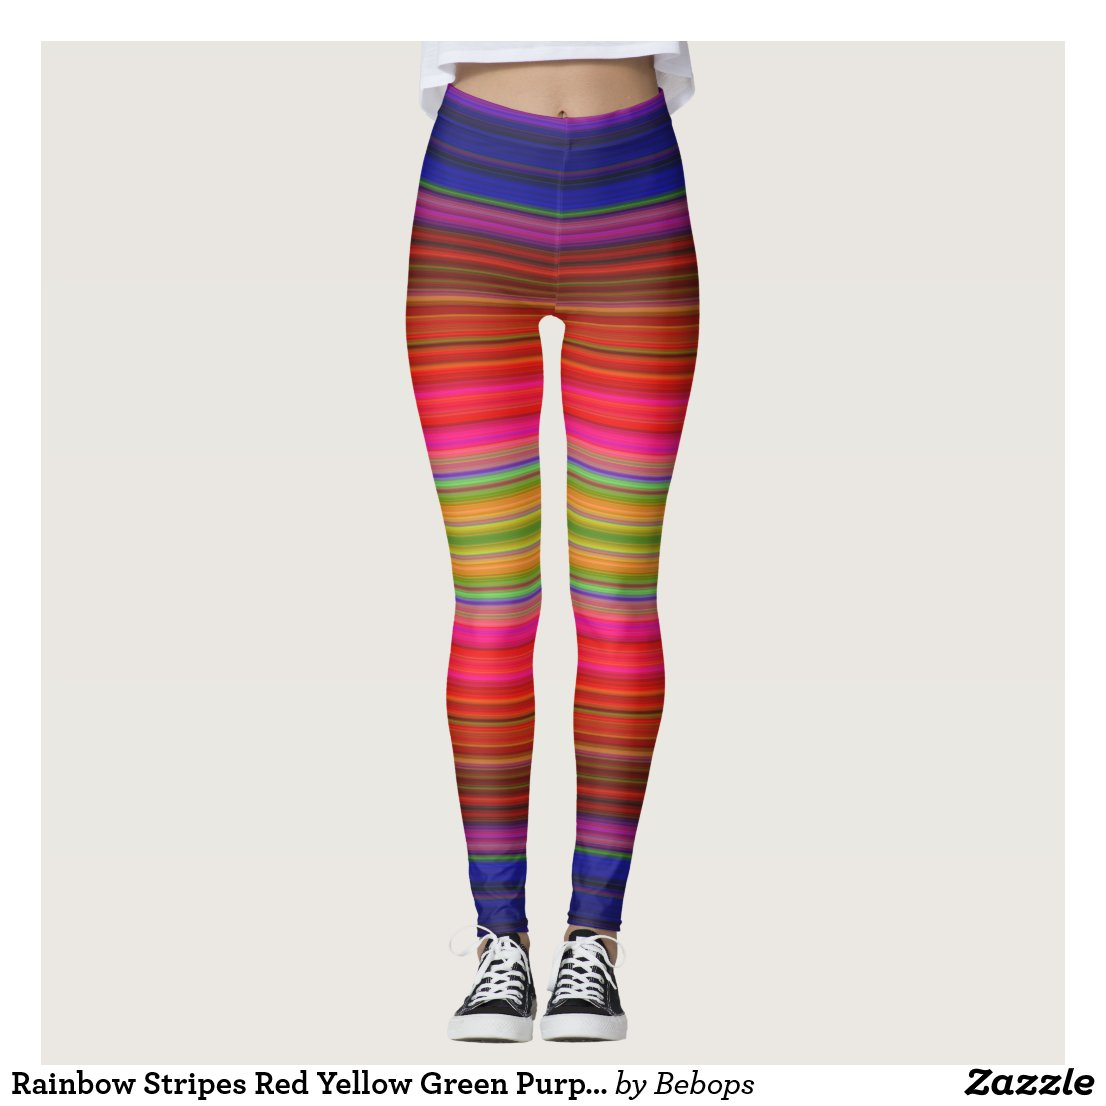 Rainbow Stripes Red Yellow Green Purple Leggings